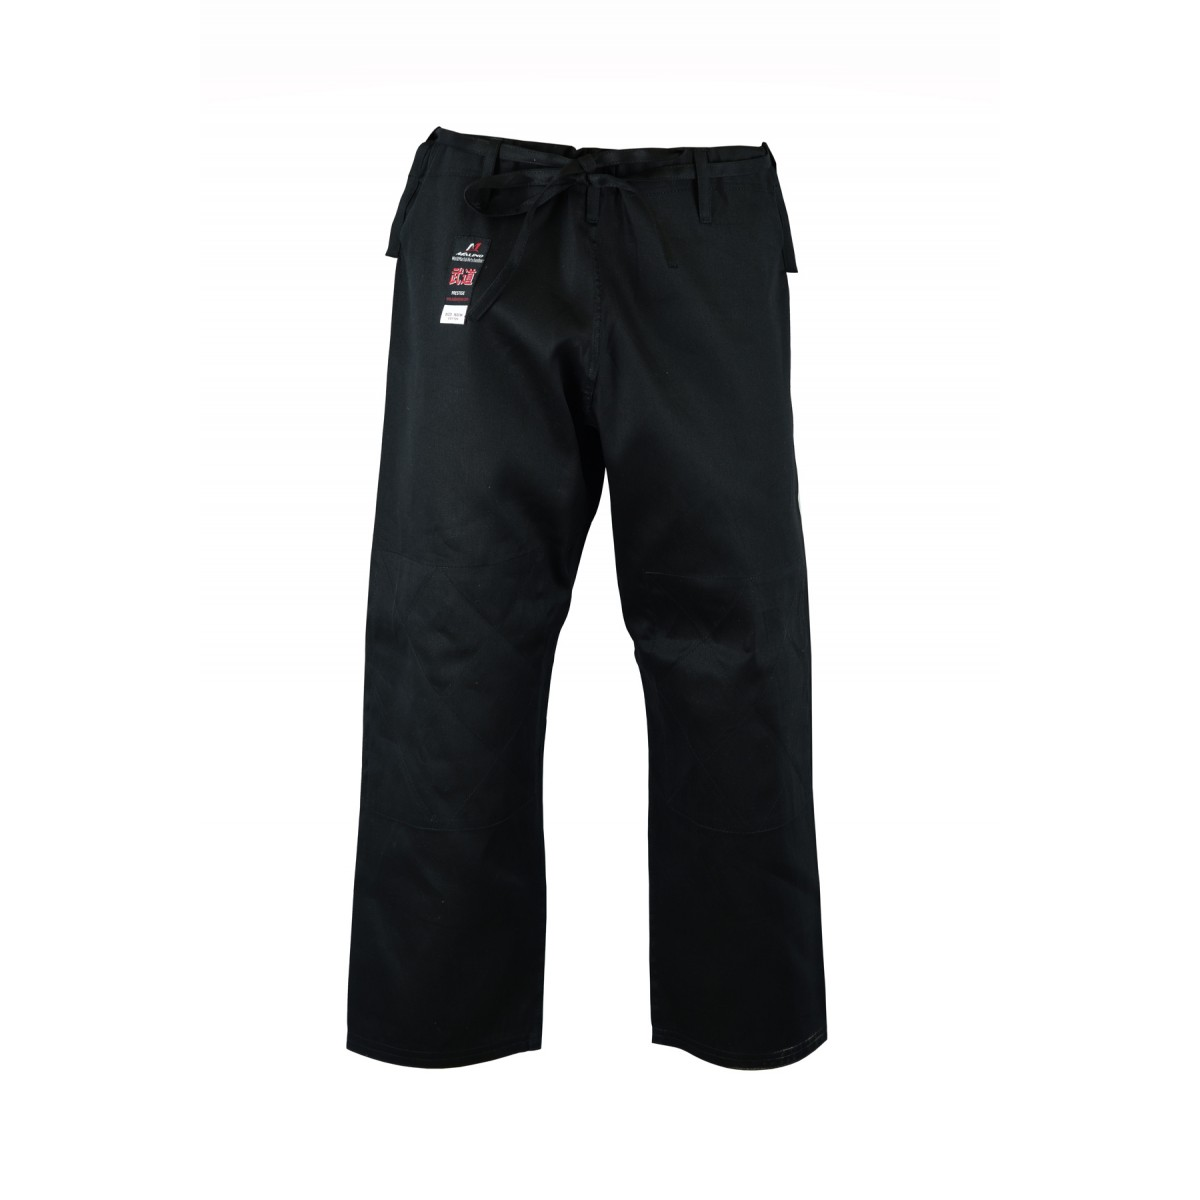 Kids Student Judo Trousers Lightweight Cotton Black - 7oz